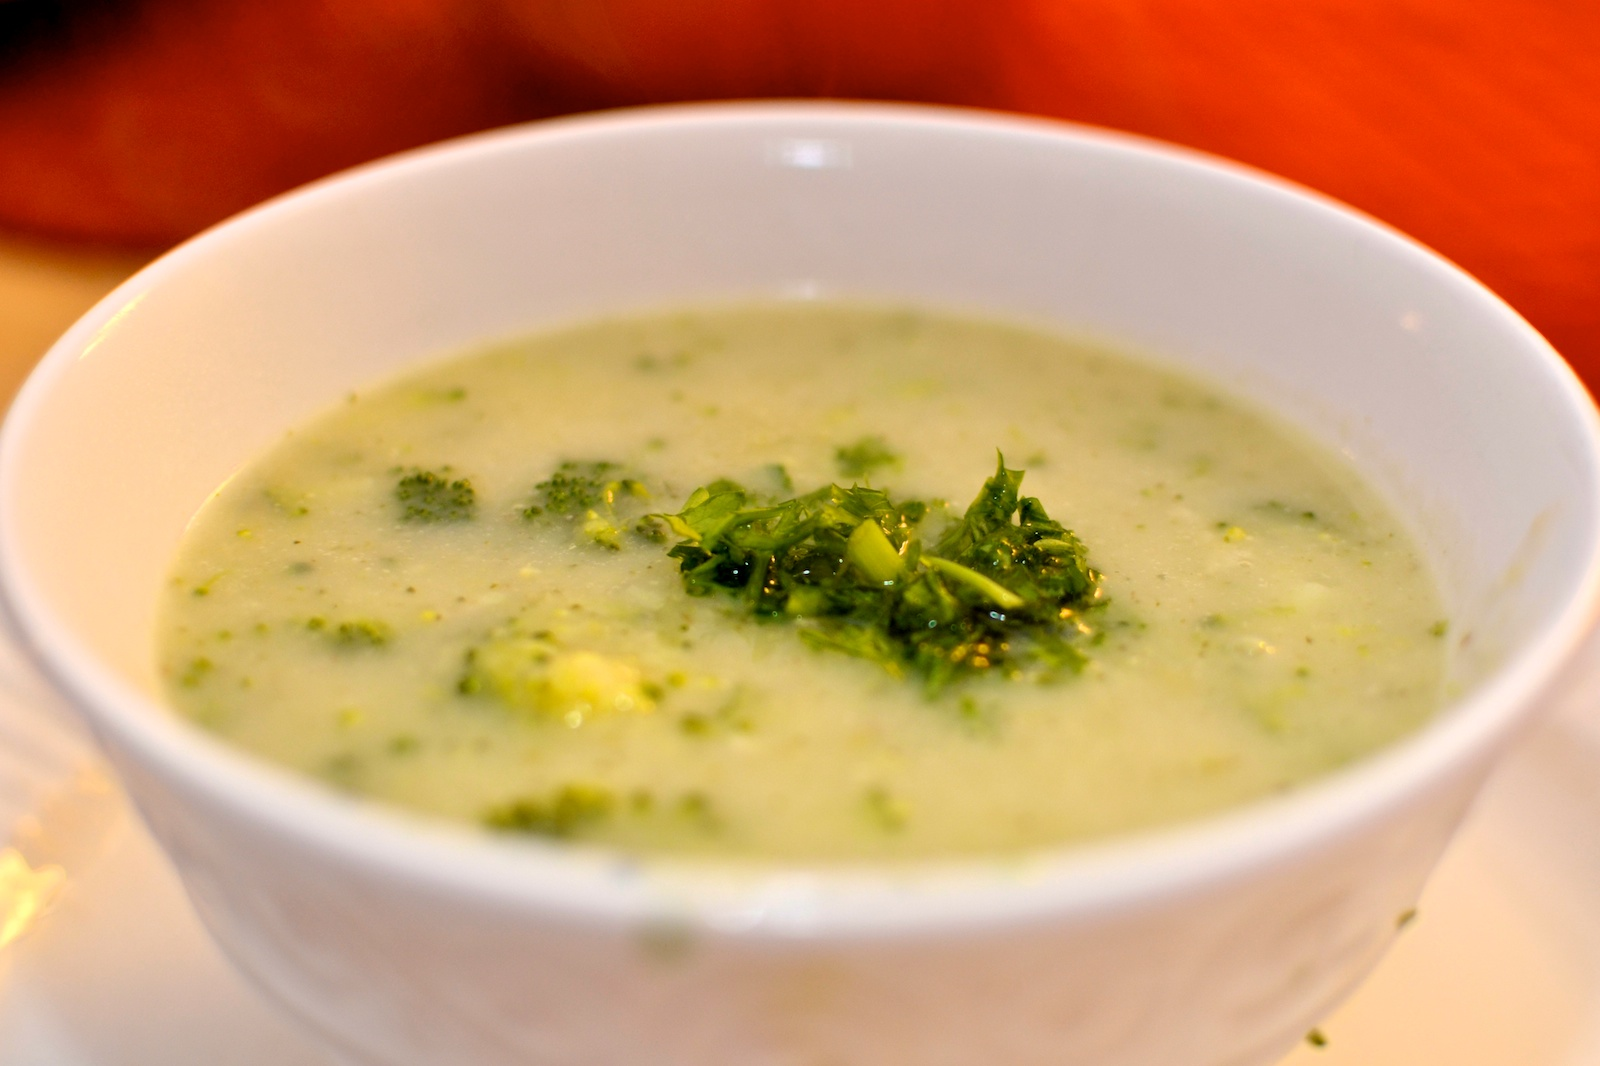 Creamy Coconut Milk Broccoli Soup